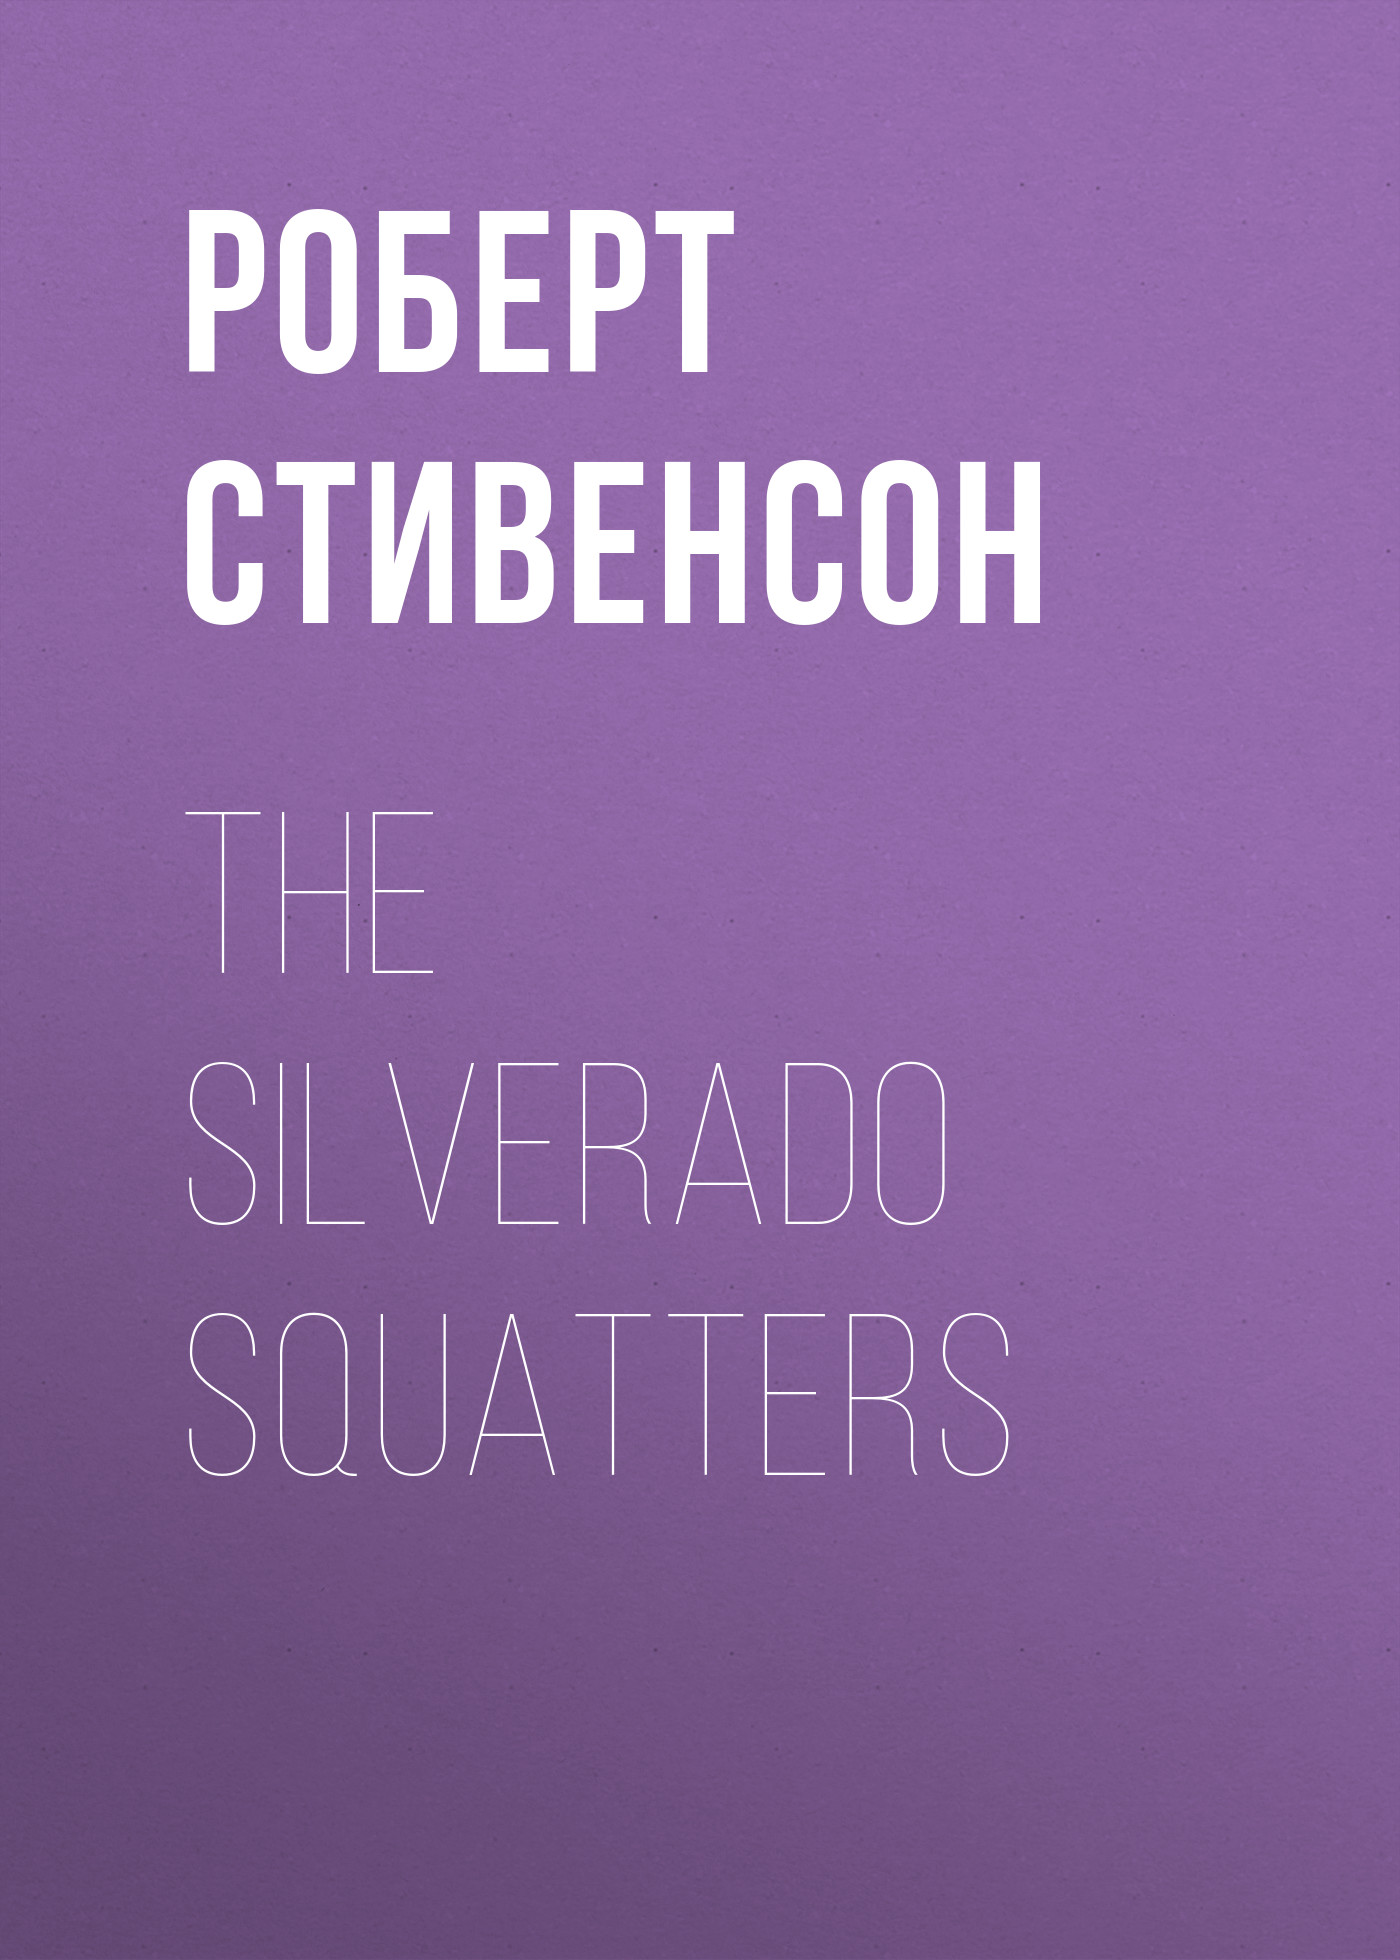 Роберт Льюис Стивенсон The Silverado Squatters роберт льюис стивенсон the silverado squatters